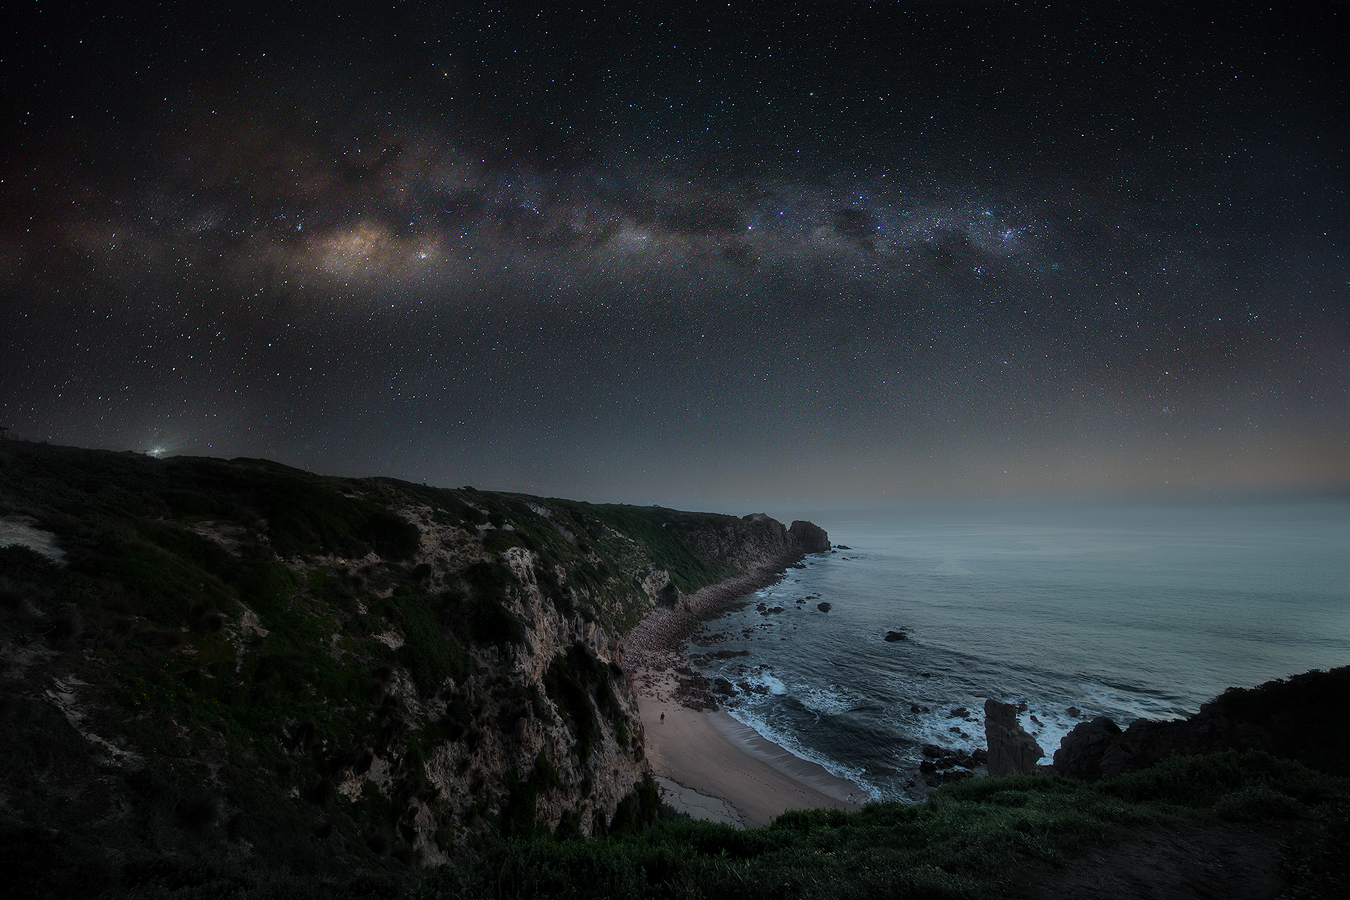 Milky-Way Photography at Phillip island | We Are Raw Photography